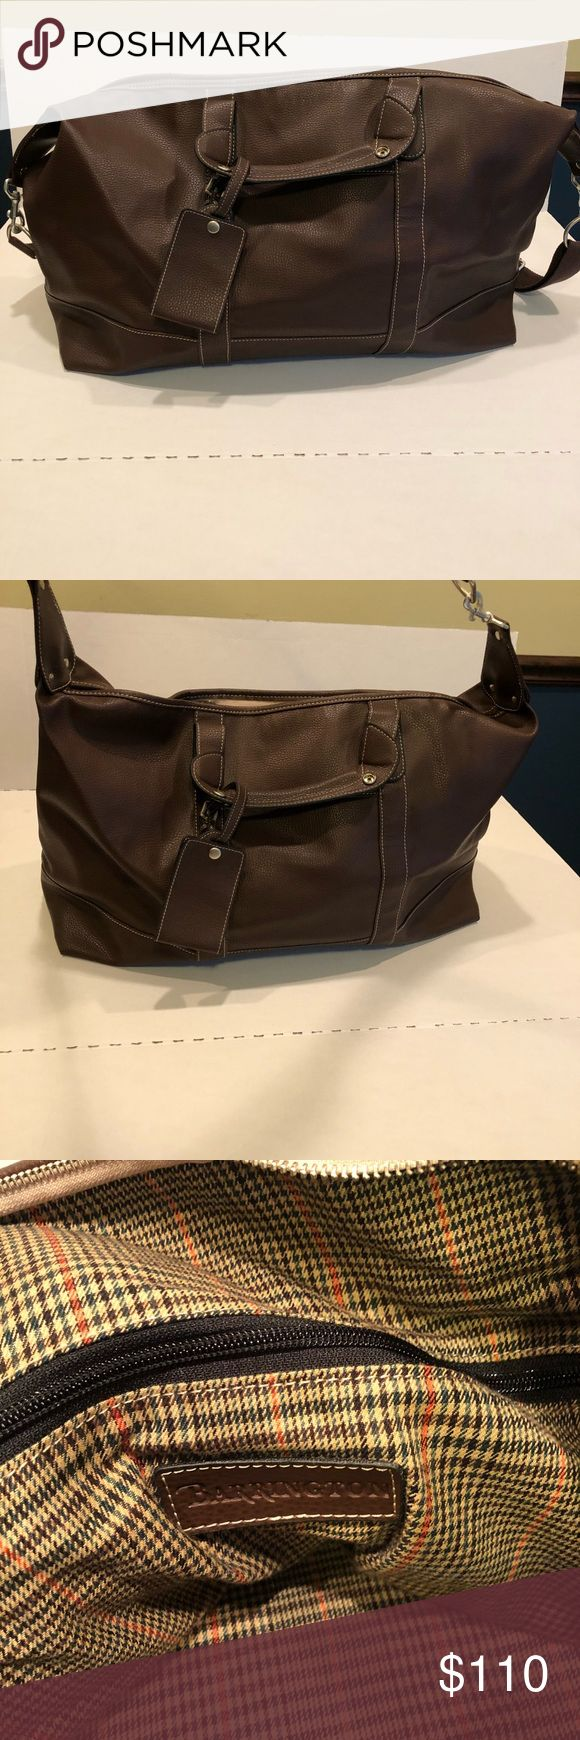 Large BARRINGTON brown leather tote bag duffle Like new! Never used!!! Beautiful large brown leather tote or duffle bag by BARRINGTON. Gorgeous bag!  Measurements in photos. barrington Bags Totes